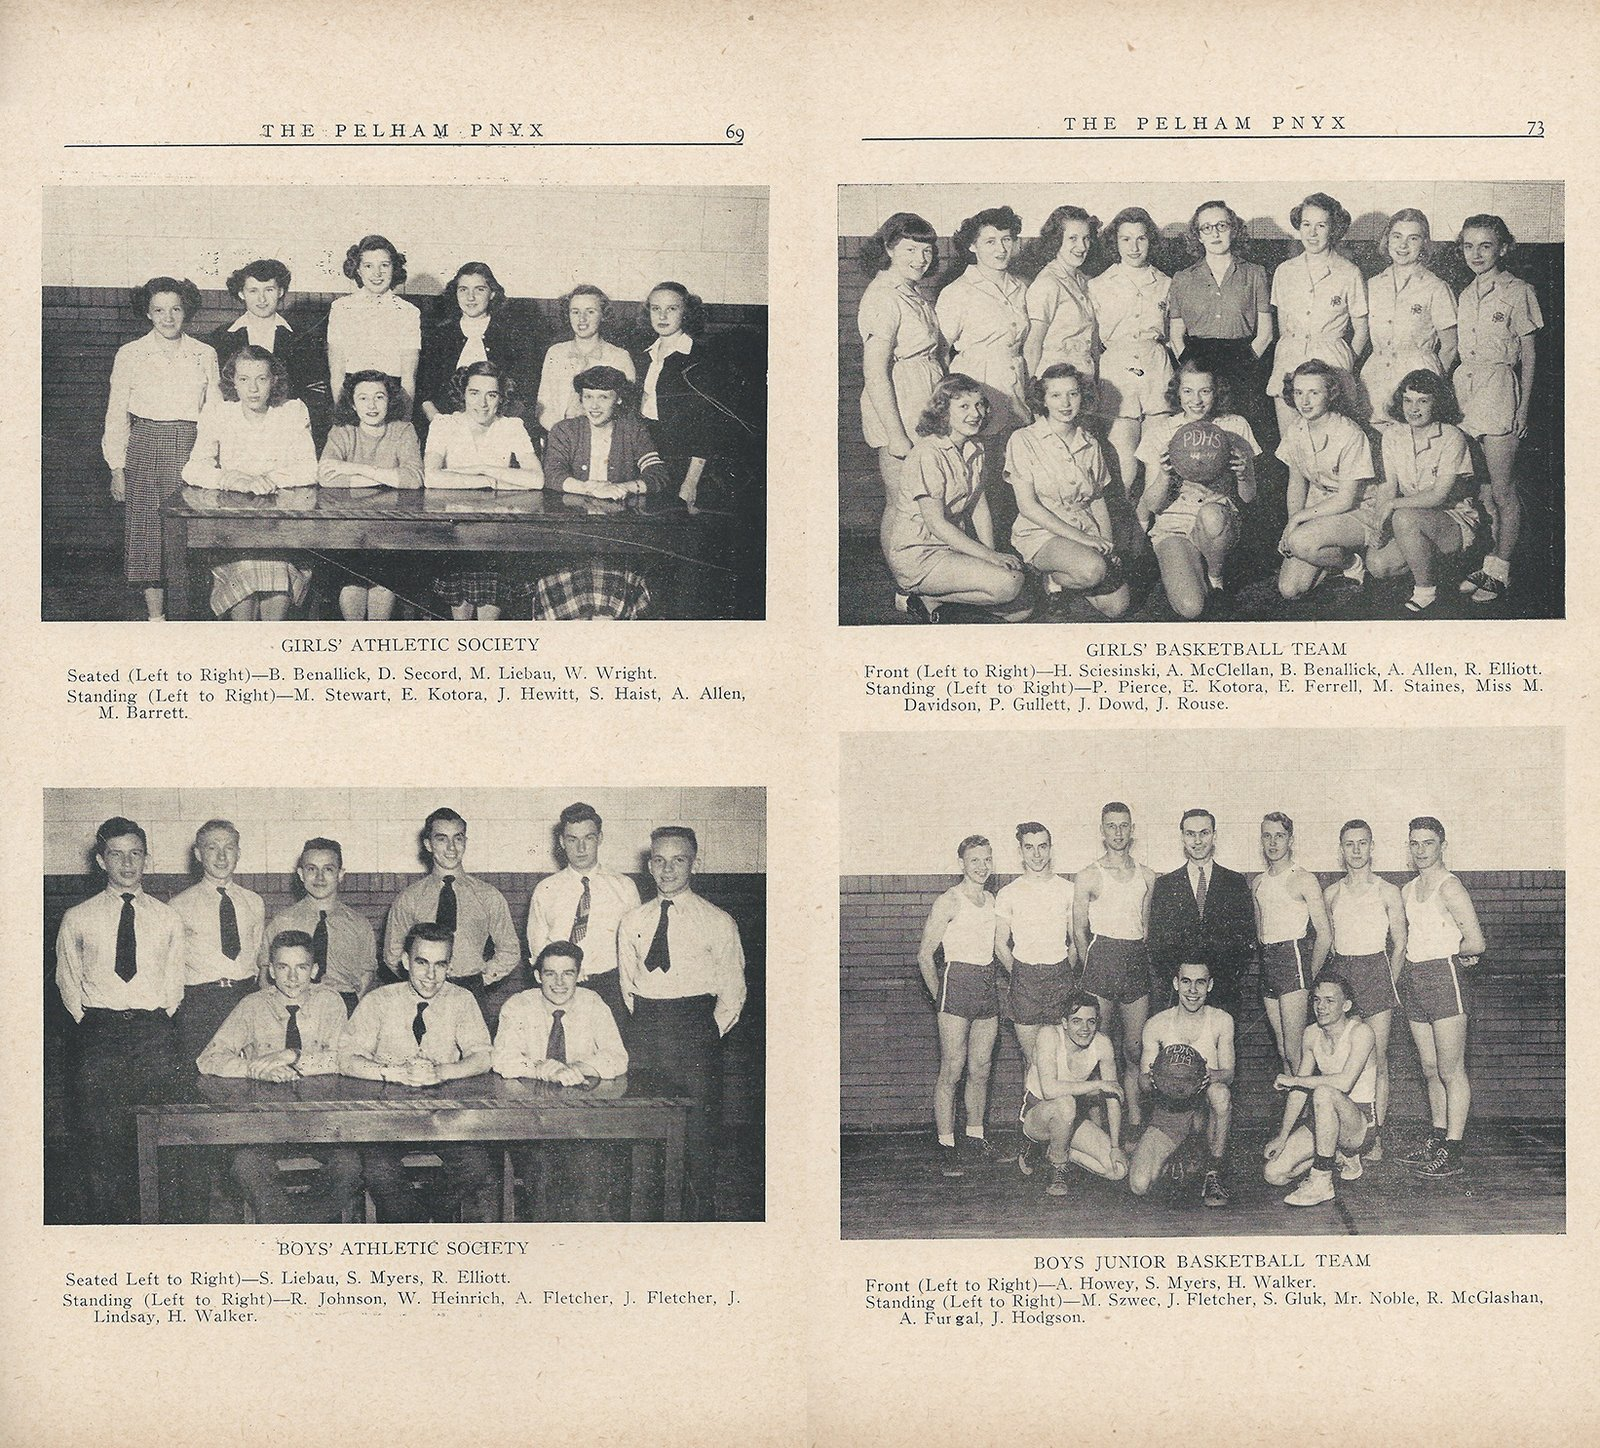 Pelham Pnyx 1949 - Photographs of the Boys and Girls' Athletic Societies and Basketball Teams